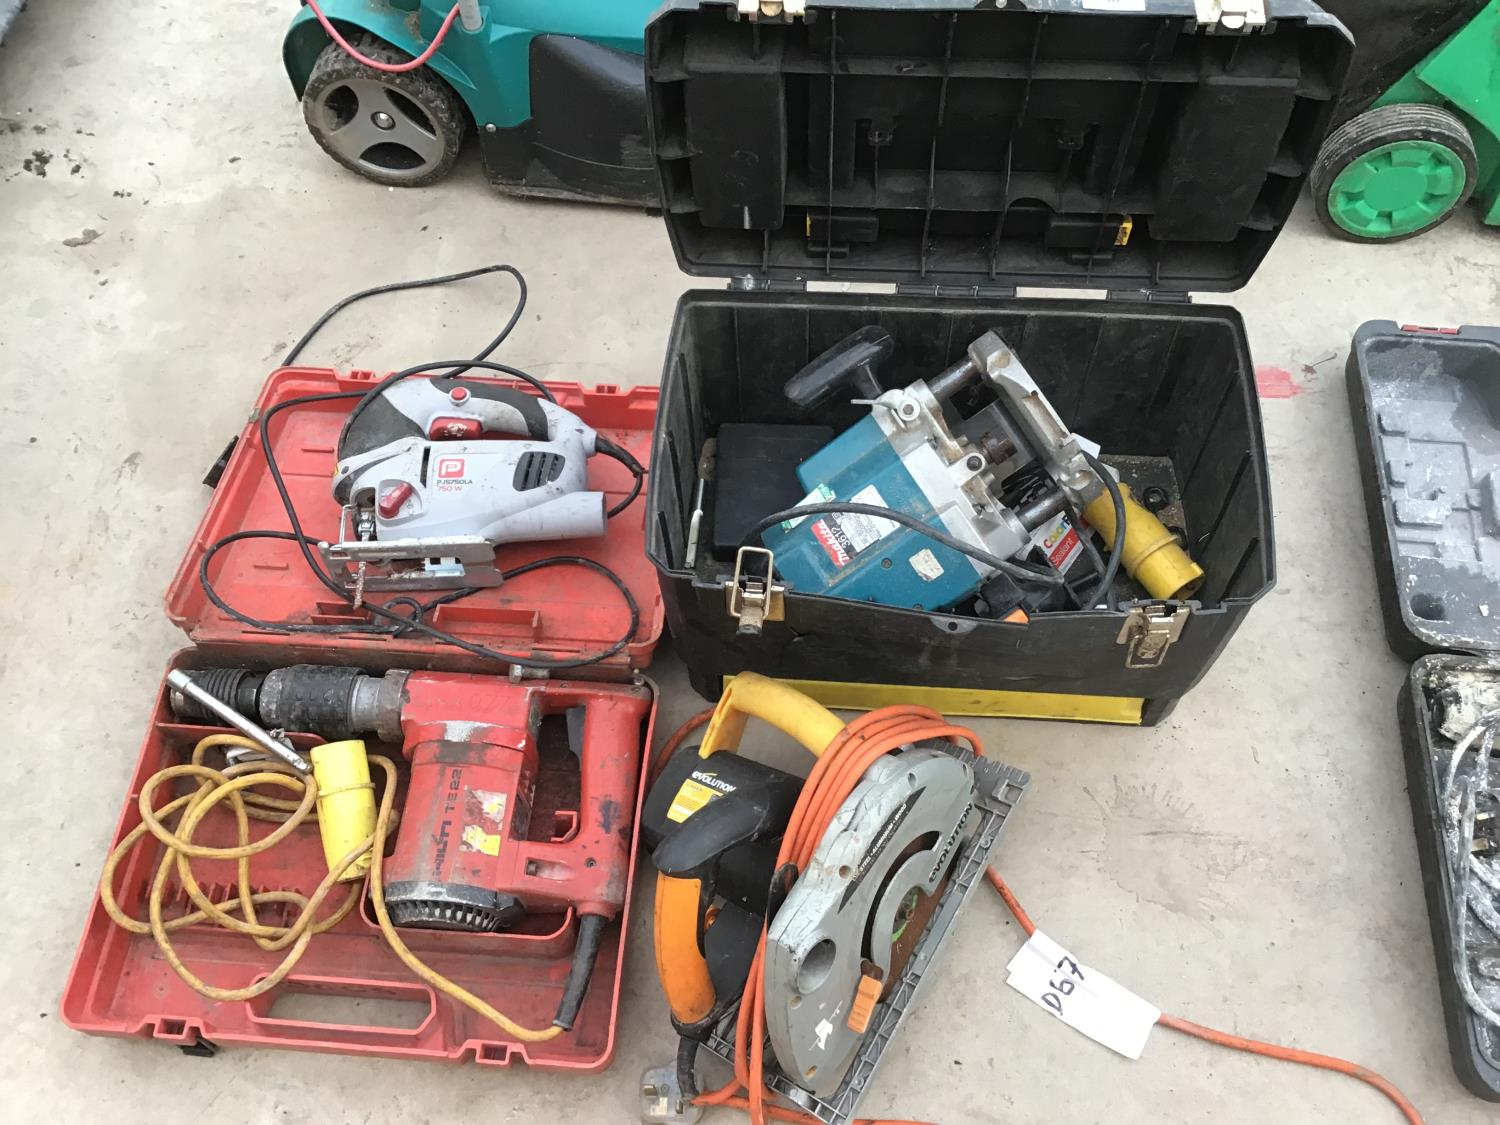 Lot 56 - FOUR POWER TOOLS TO INCLUDE A MAKITA ROUTER, EVOLUTION RIP SAW, JIGSAW AND DRILL (TWO 110V NOT